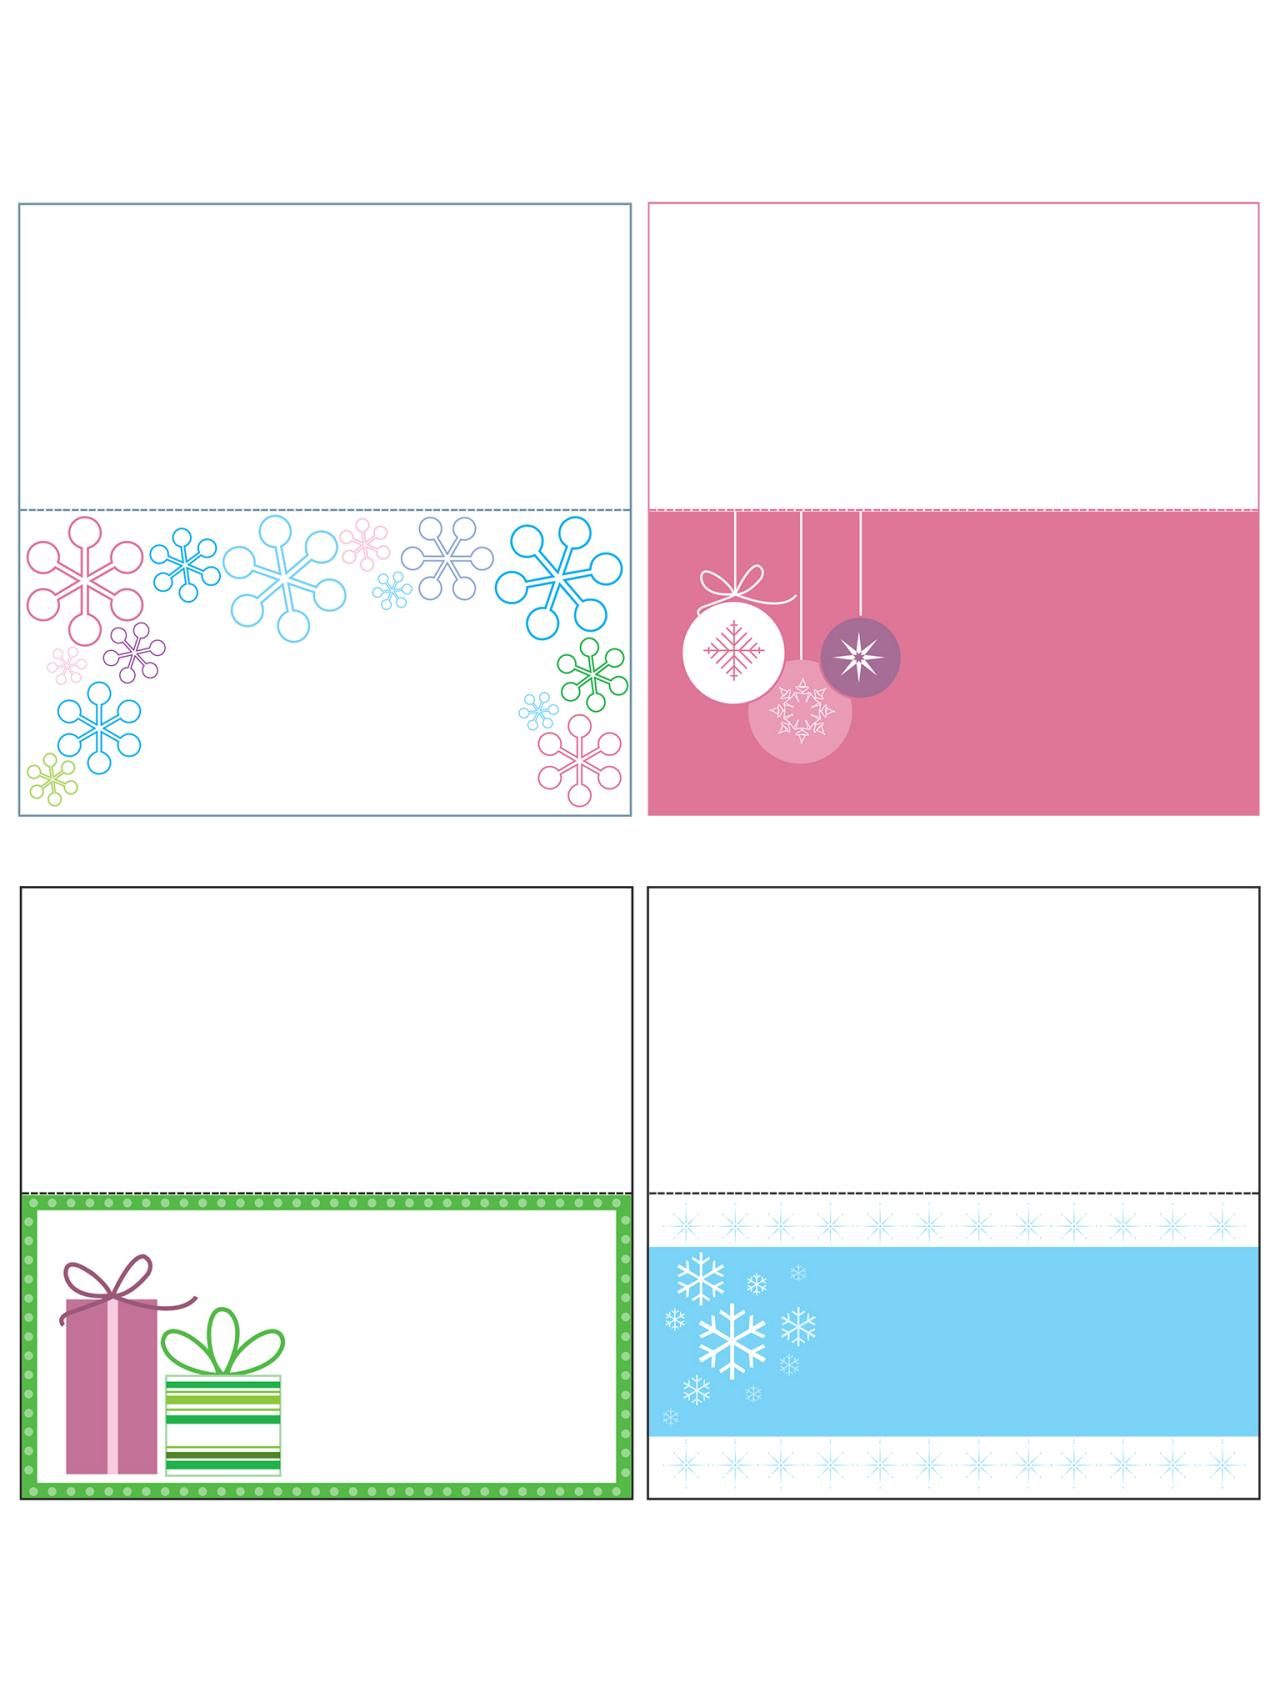 Free Christmas Templates Printable Gift Tags Cards Crafts More - Card template free: avery place card template